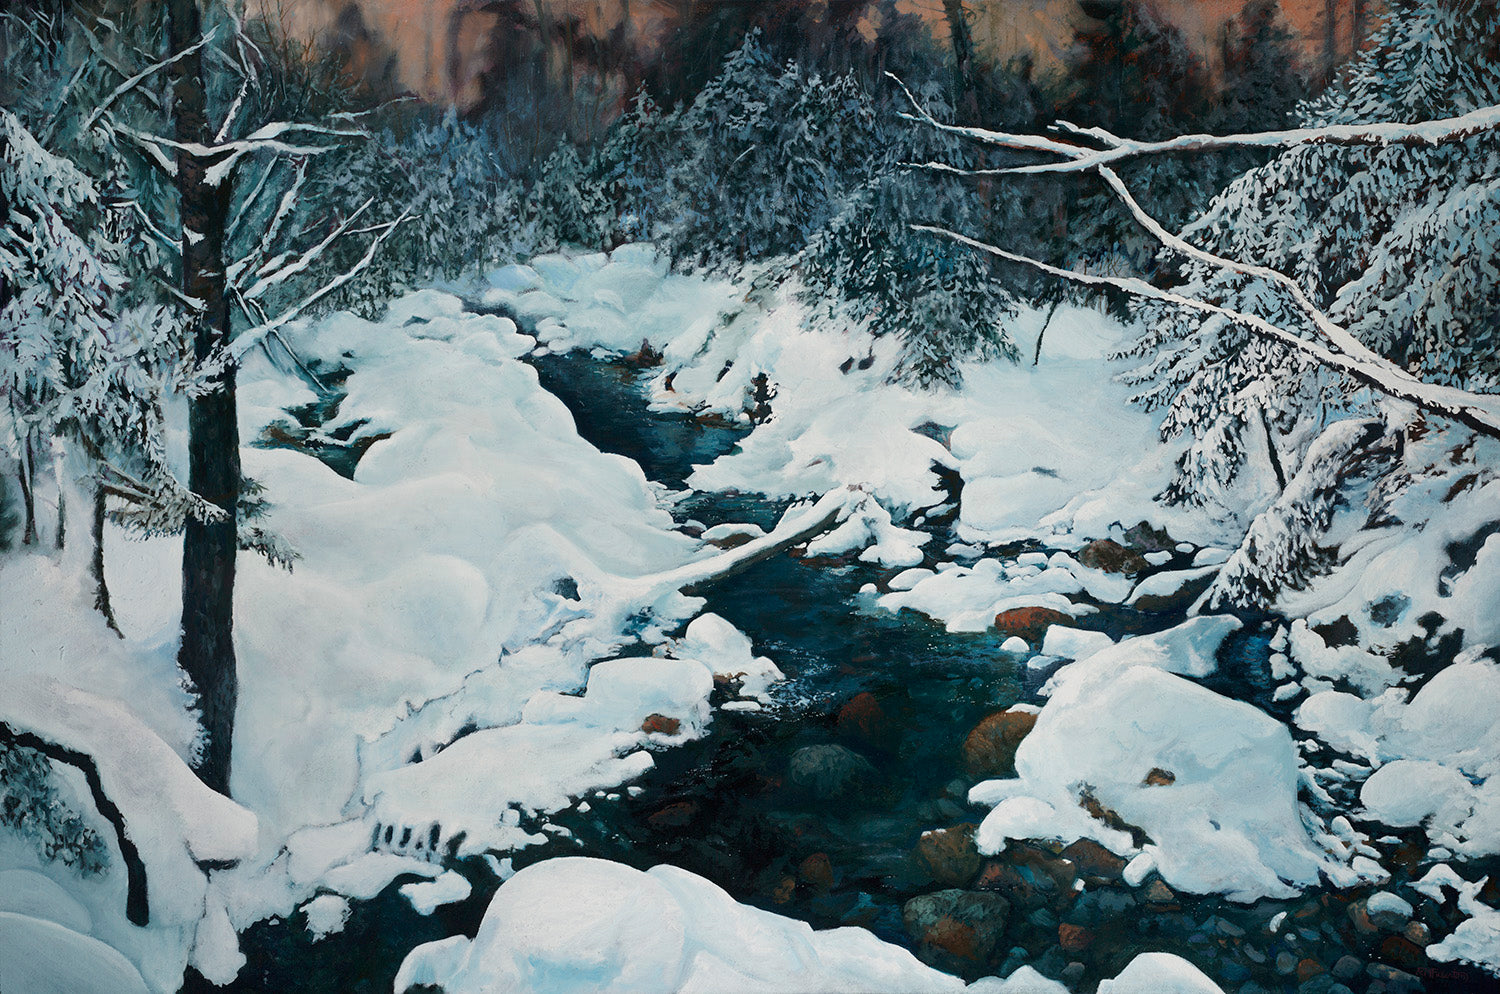 """Crawford Brook in Winter"" is a 30 by 45 inch oil on canvas painting by Rebecca M. Fullerton, depicting deep winter woods with the dark waters of a partially-frozen stream running through them. Bright white snow covers the many shoreline rocks and boulders and traces each tree branch."